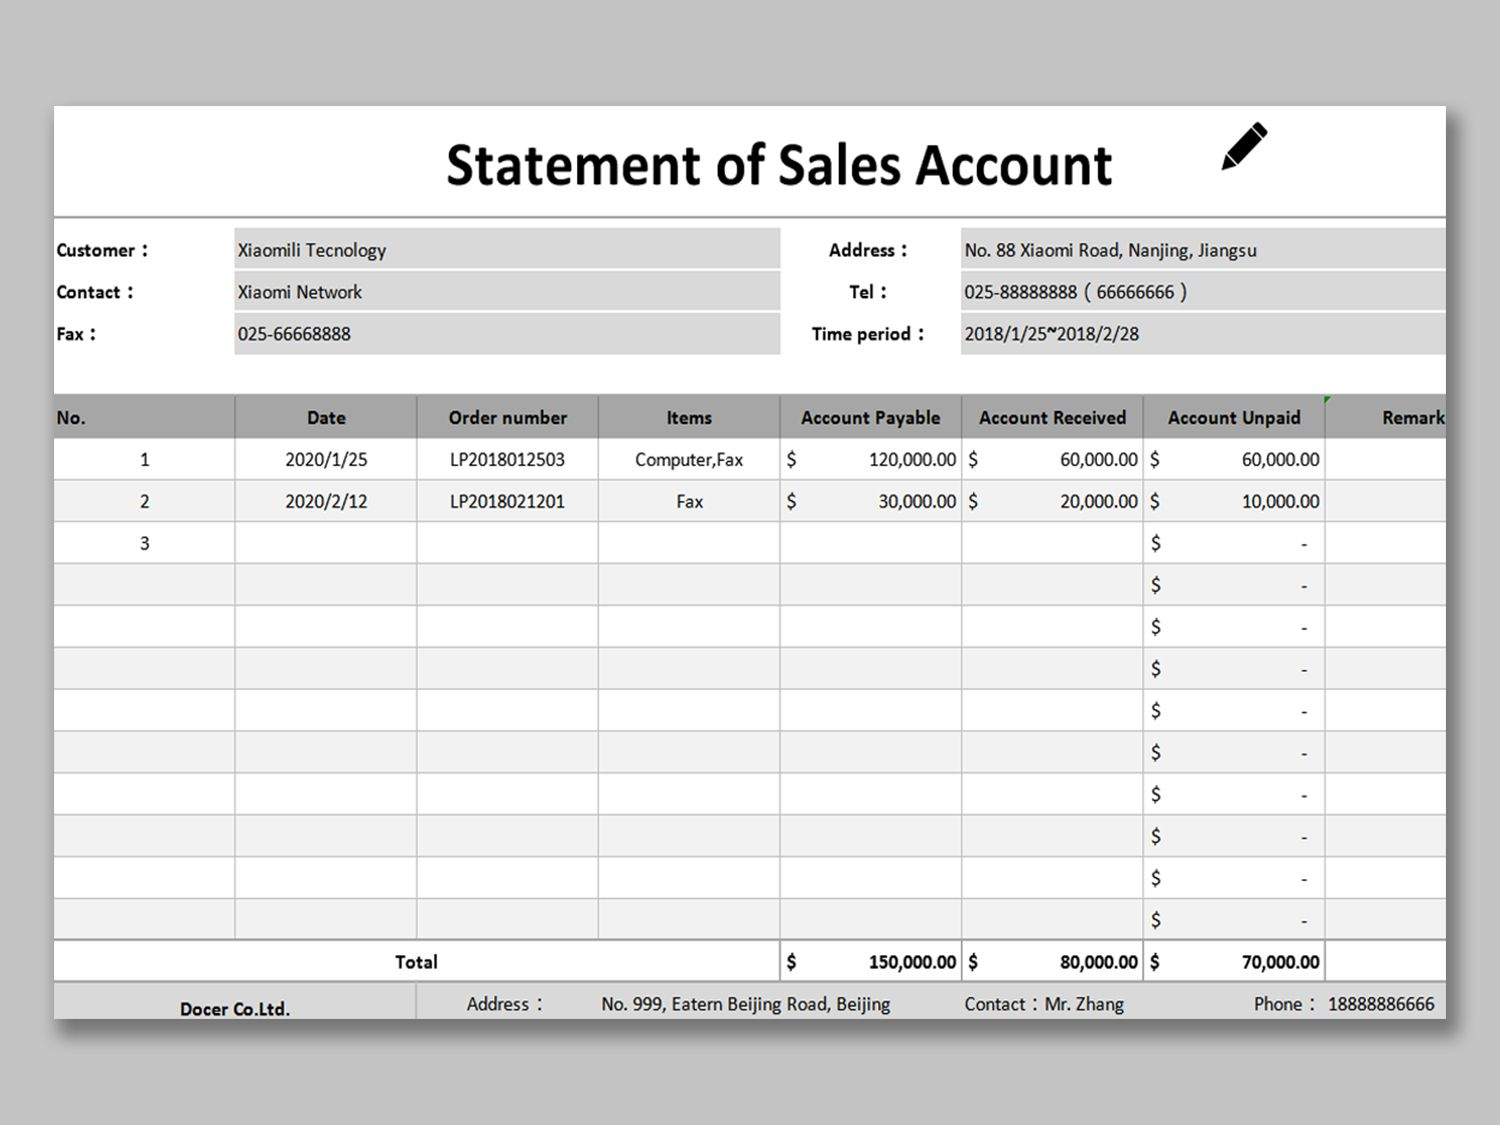 002 Phenomenal Statement Of Account Template Image  Singapore Excel Free DocFull